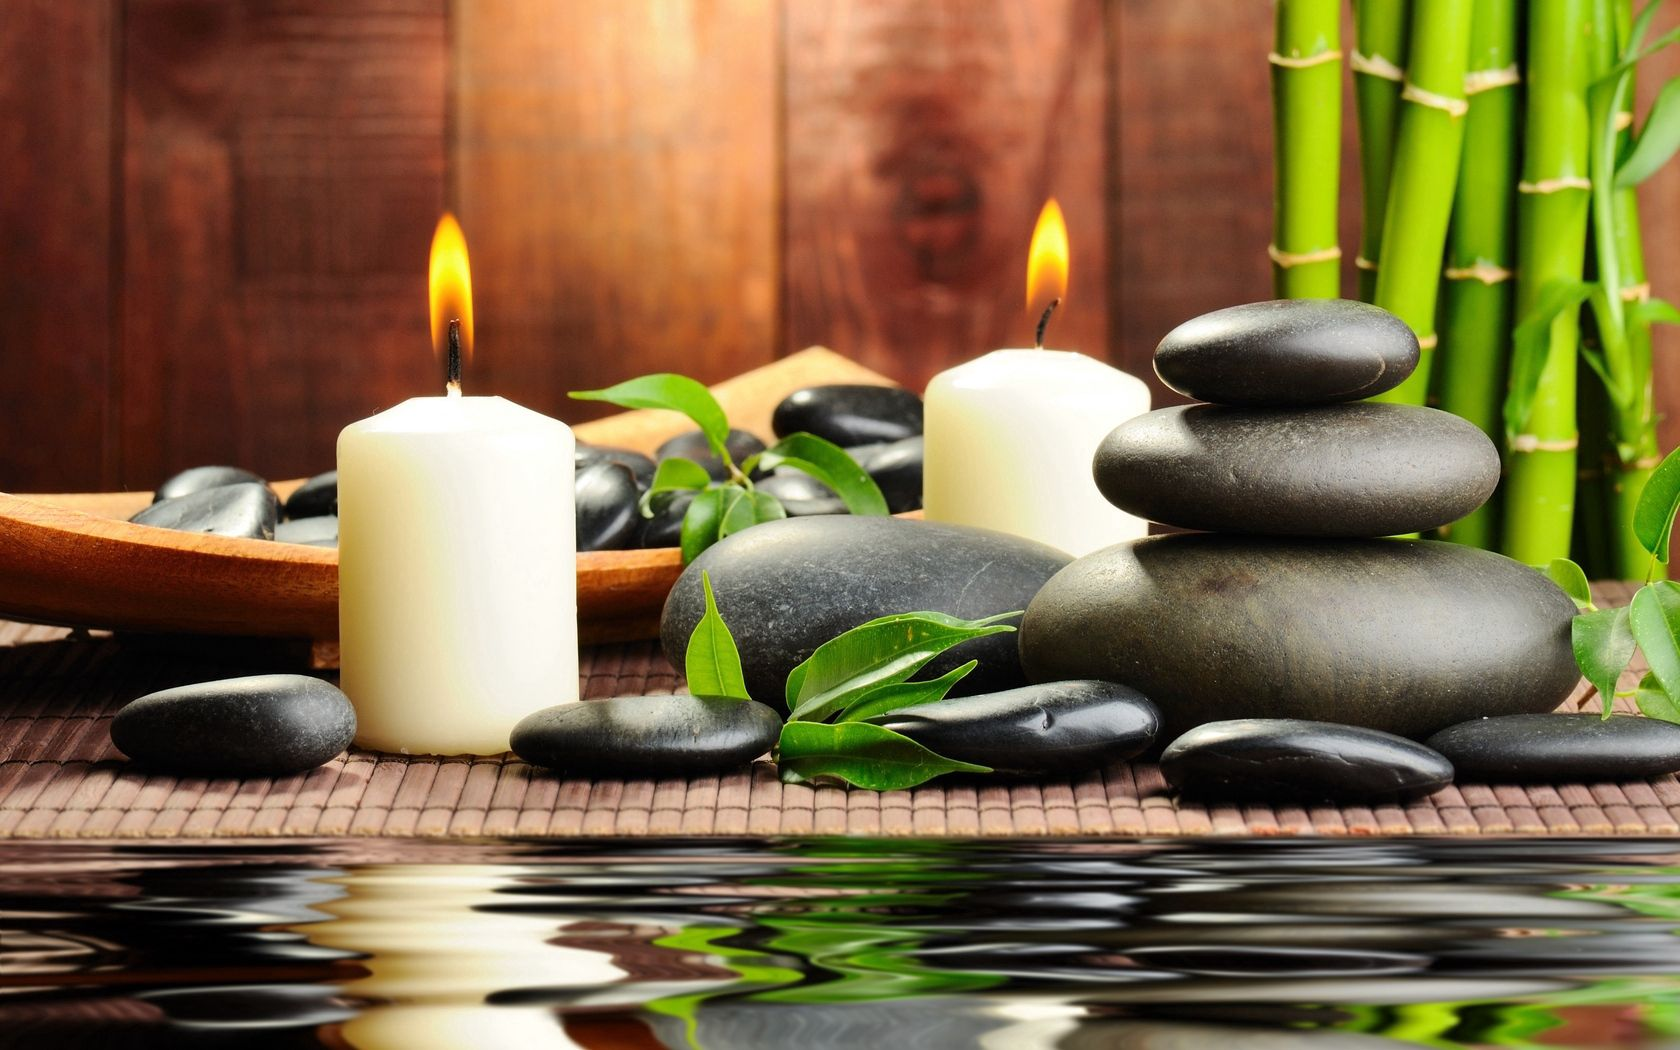 147087 download wallpaper Miscellanea, Miscellaneous, Stones, Candles, Aromatherapy, Spa, Water, Bamboo, Massage screensavers and pictures for free